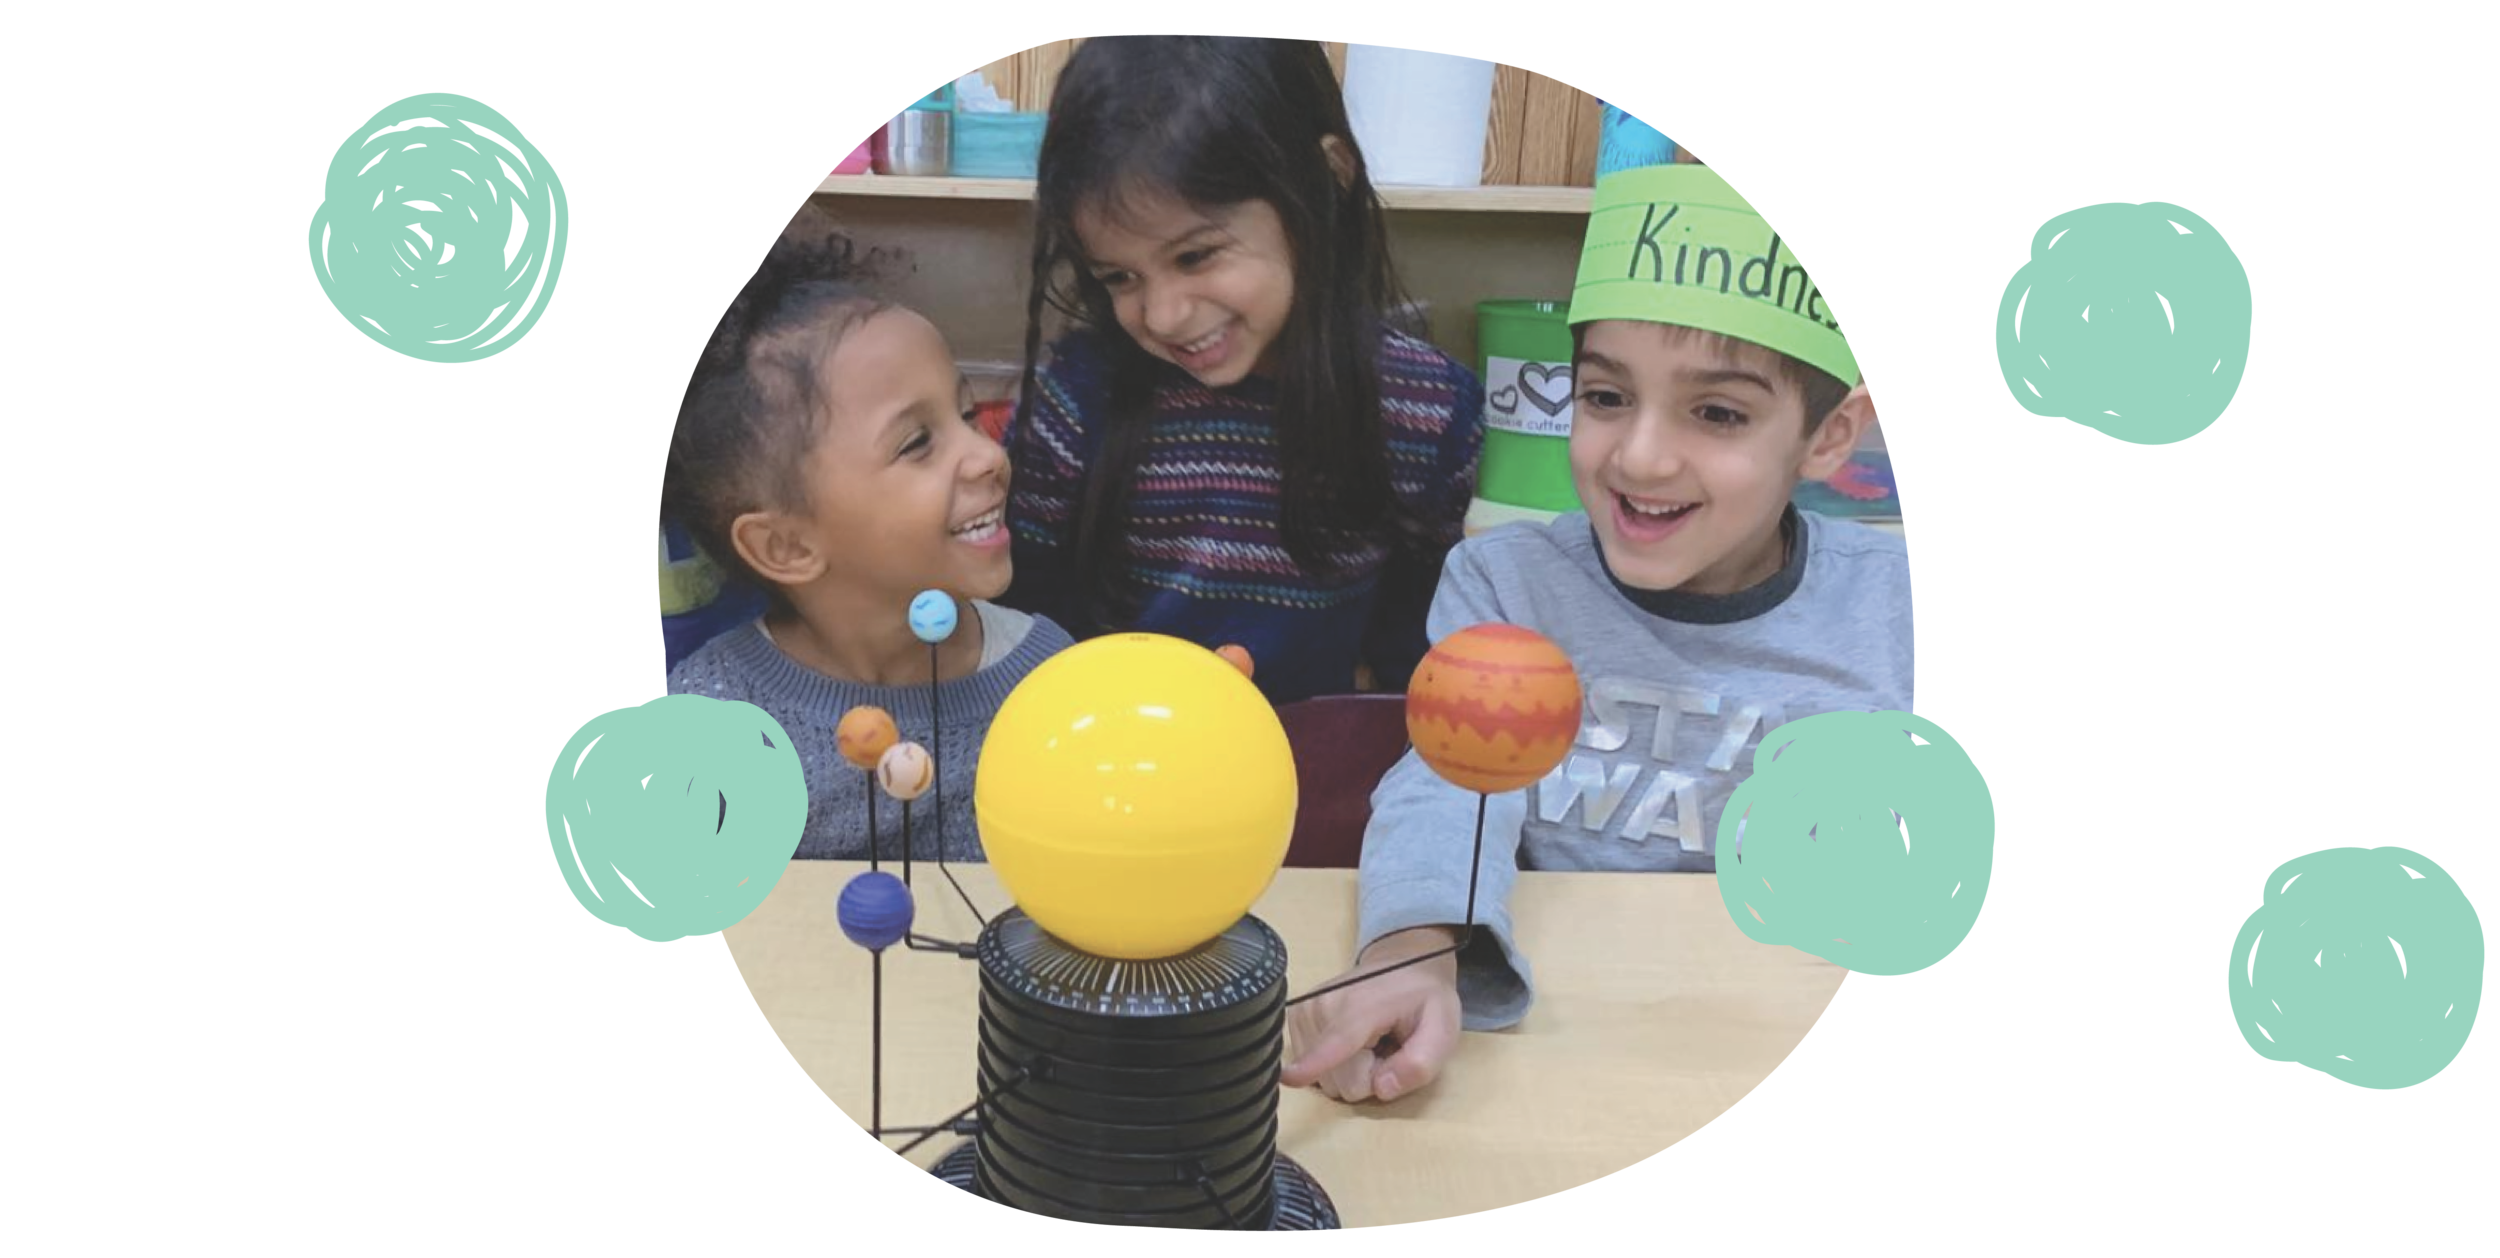 Fostering Curiosity - We encourage our children to tinker and create—we teach them to ask many questions through hands-on learning and exploration.